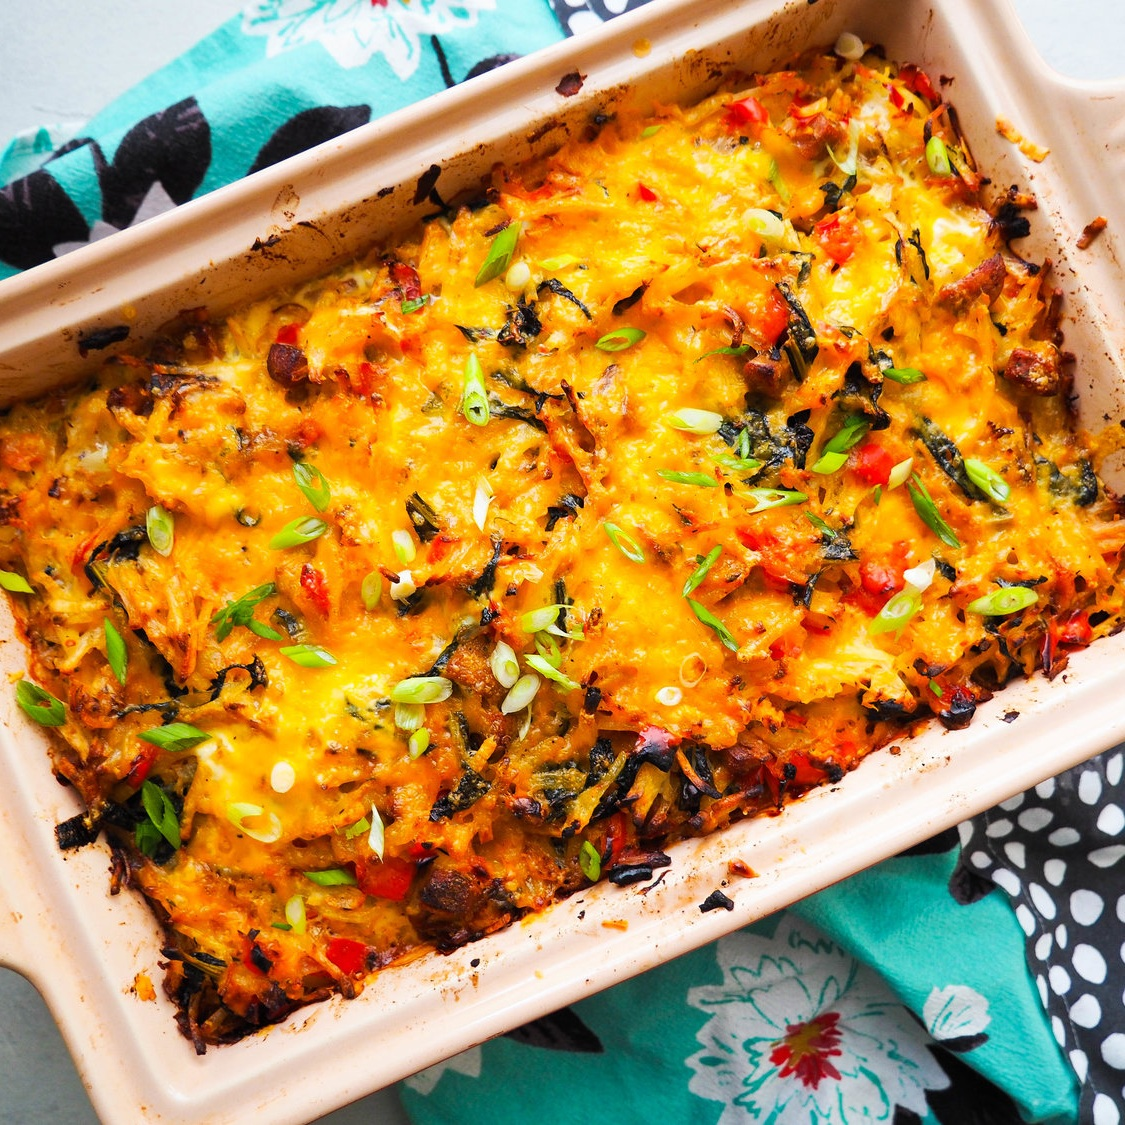 Hash Brown Breakfast Casserole with Kale